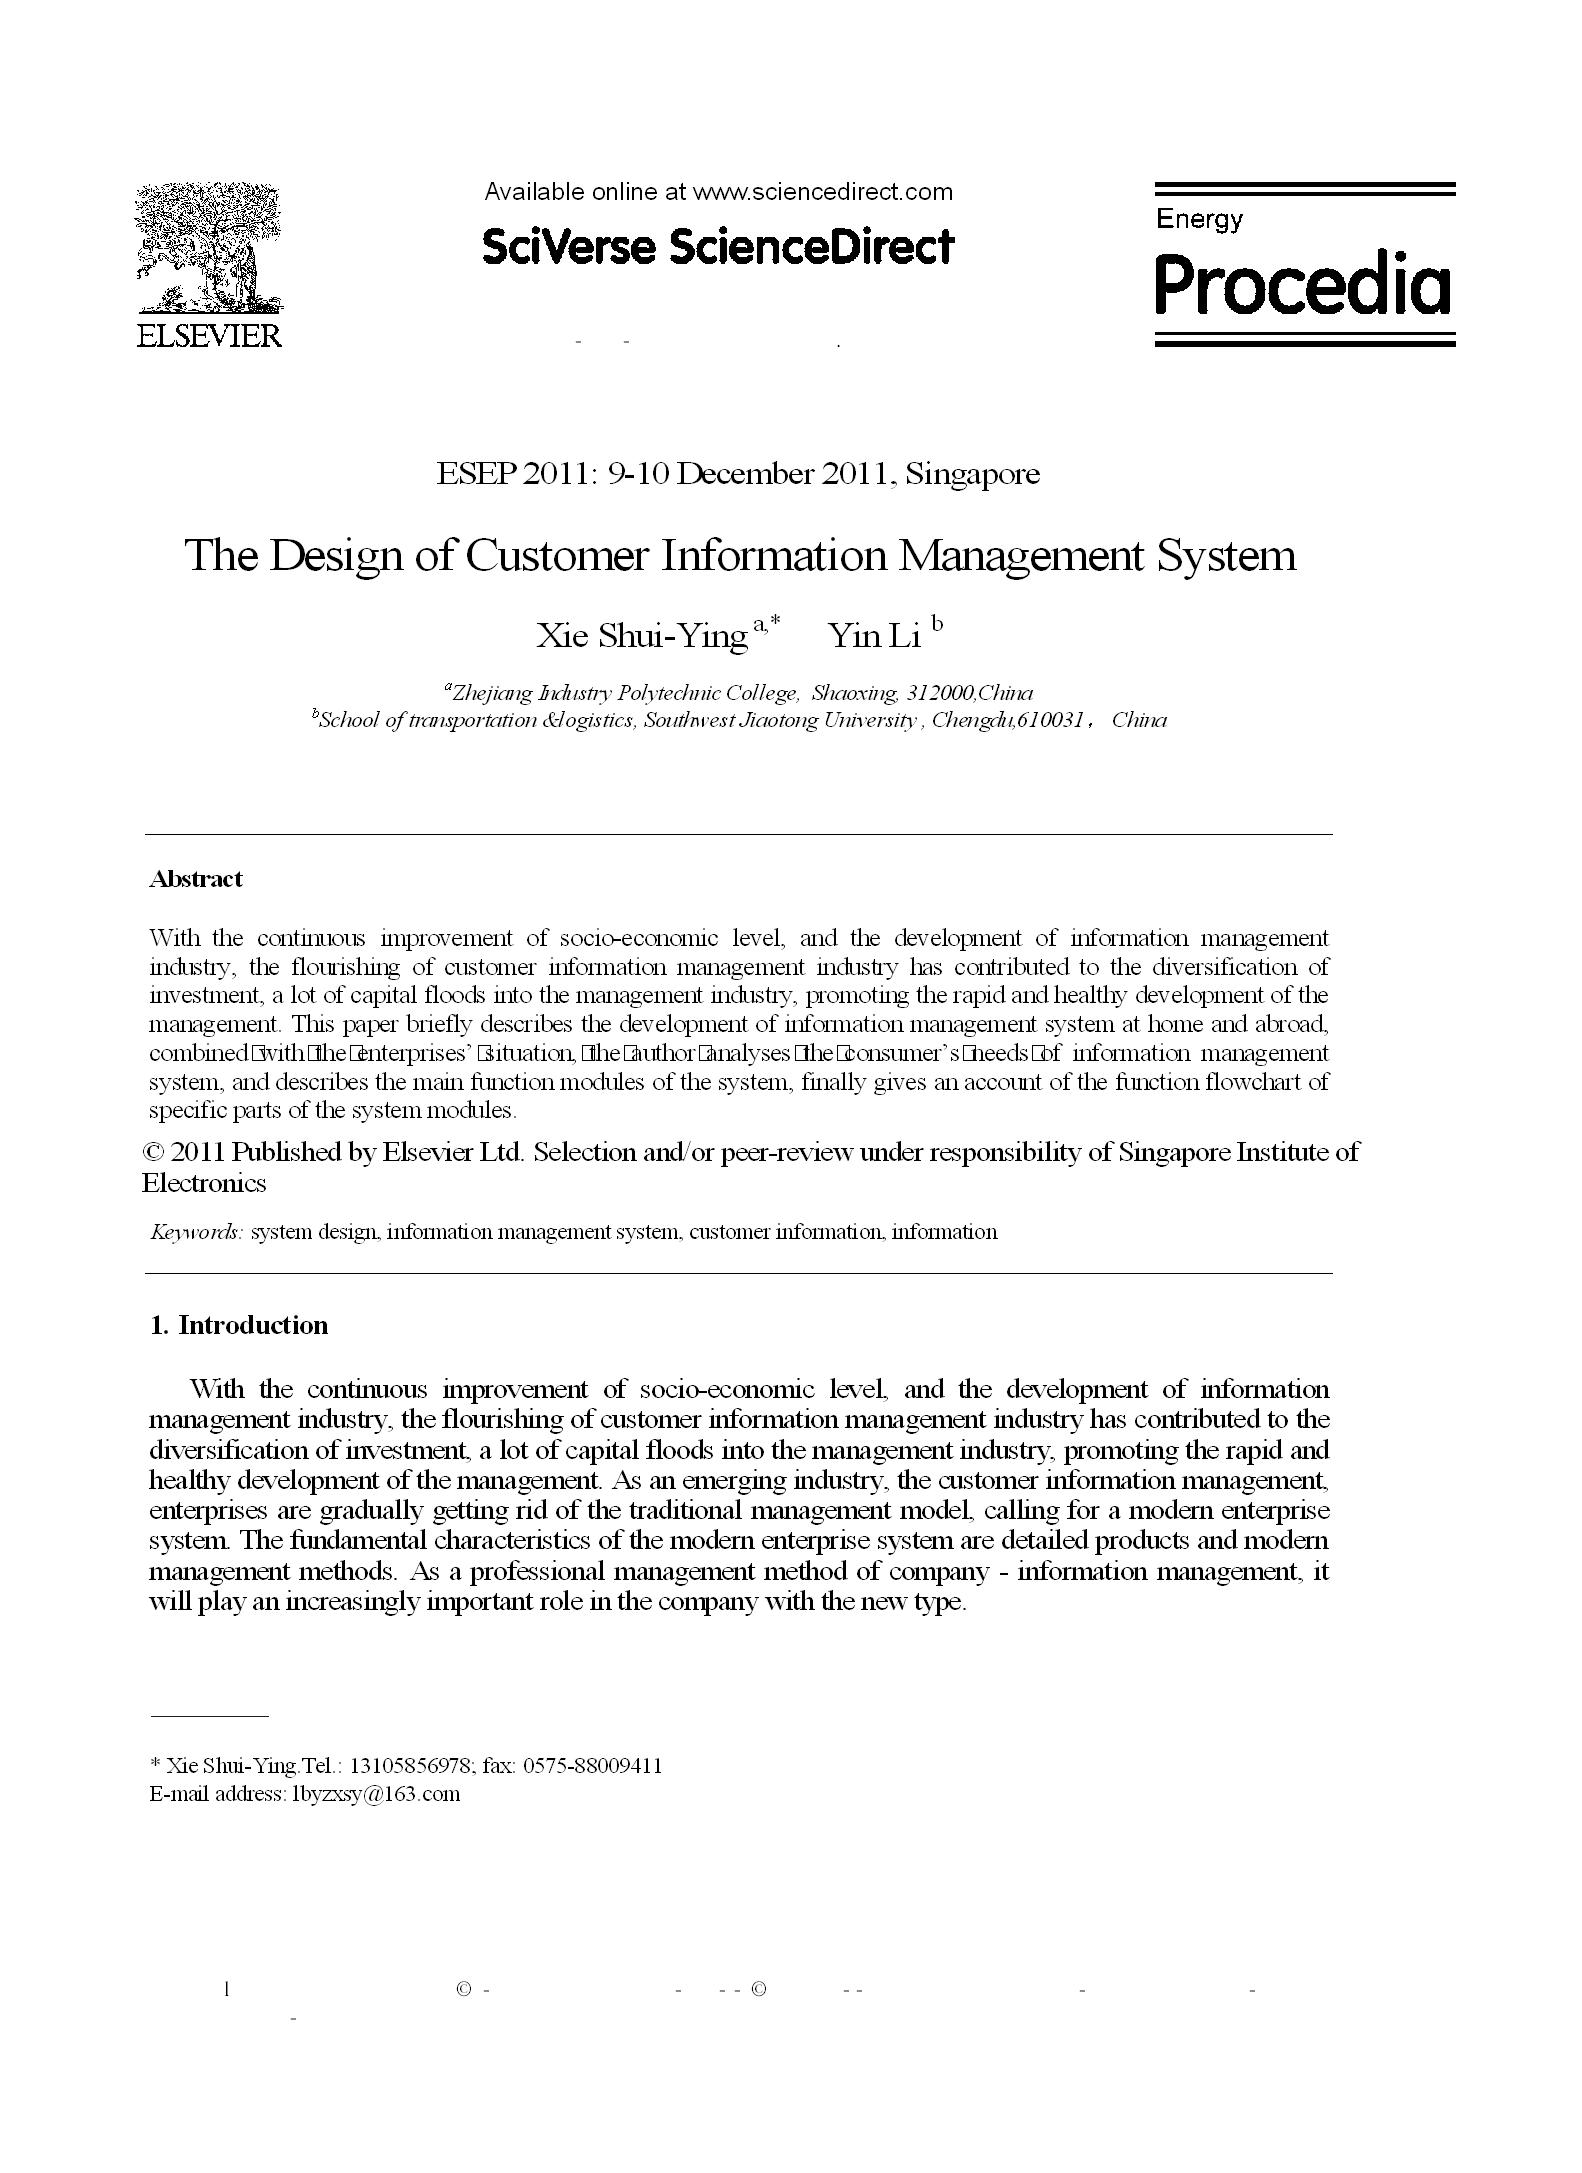 The Design of Customer Information Management System 5